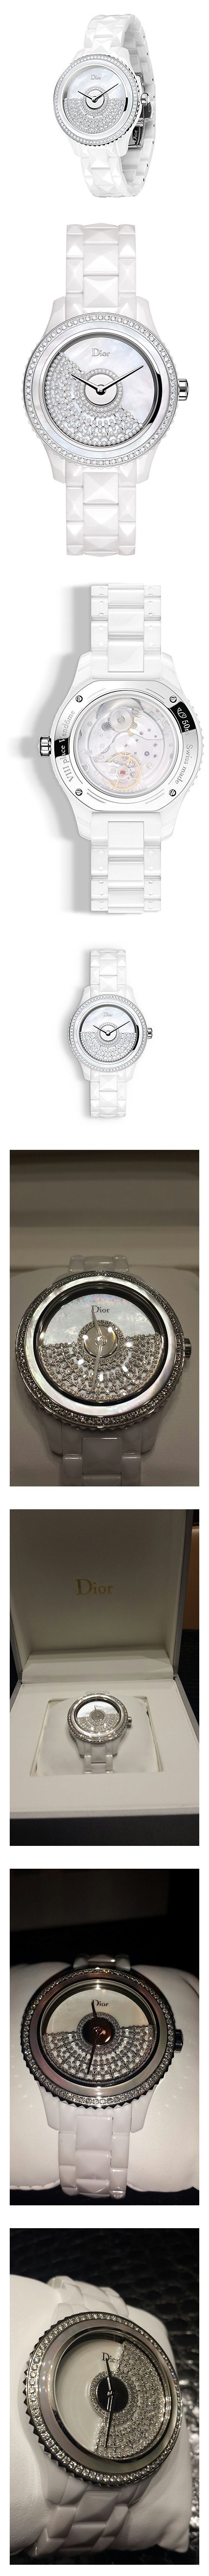 Haute Couture Diva Millionaire Dior GRAND BAL set with Pavee Diamonds #watch #christiandior #wrist_watches #watches #women #departments #shops